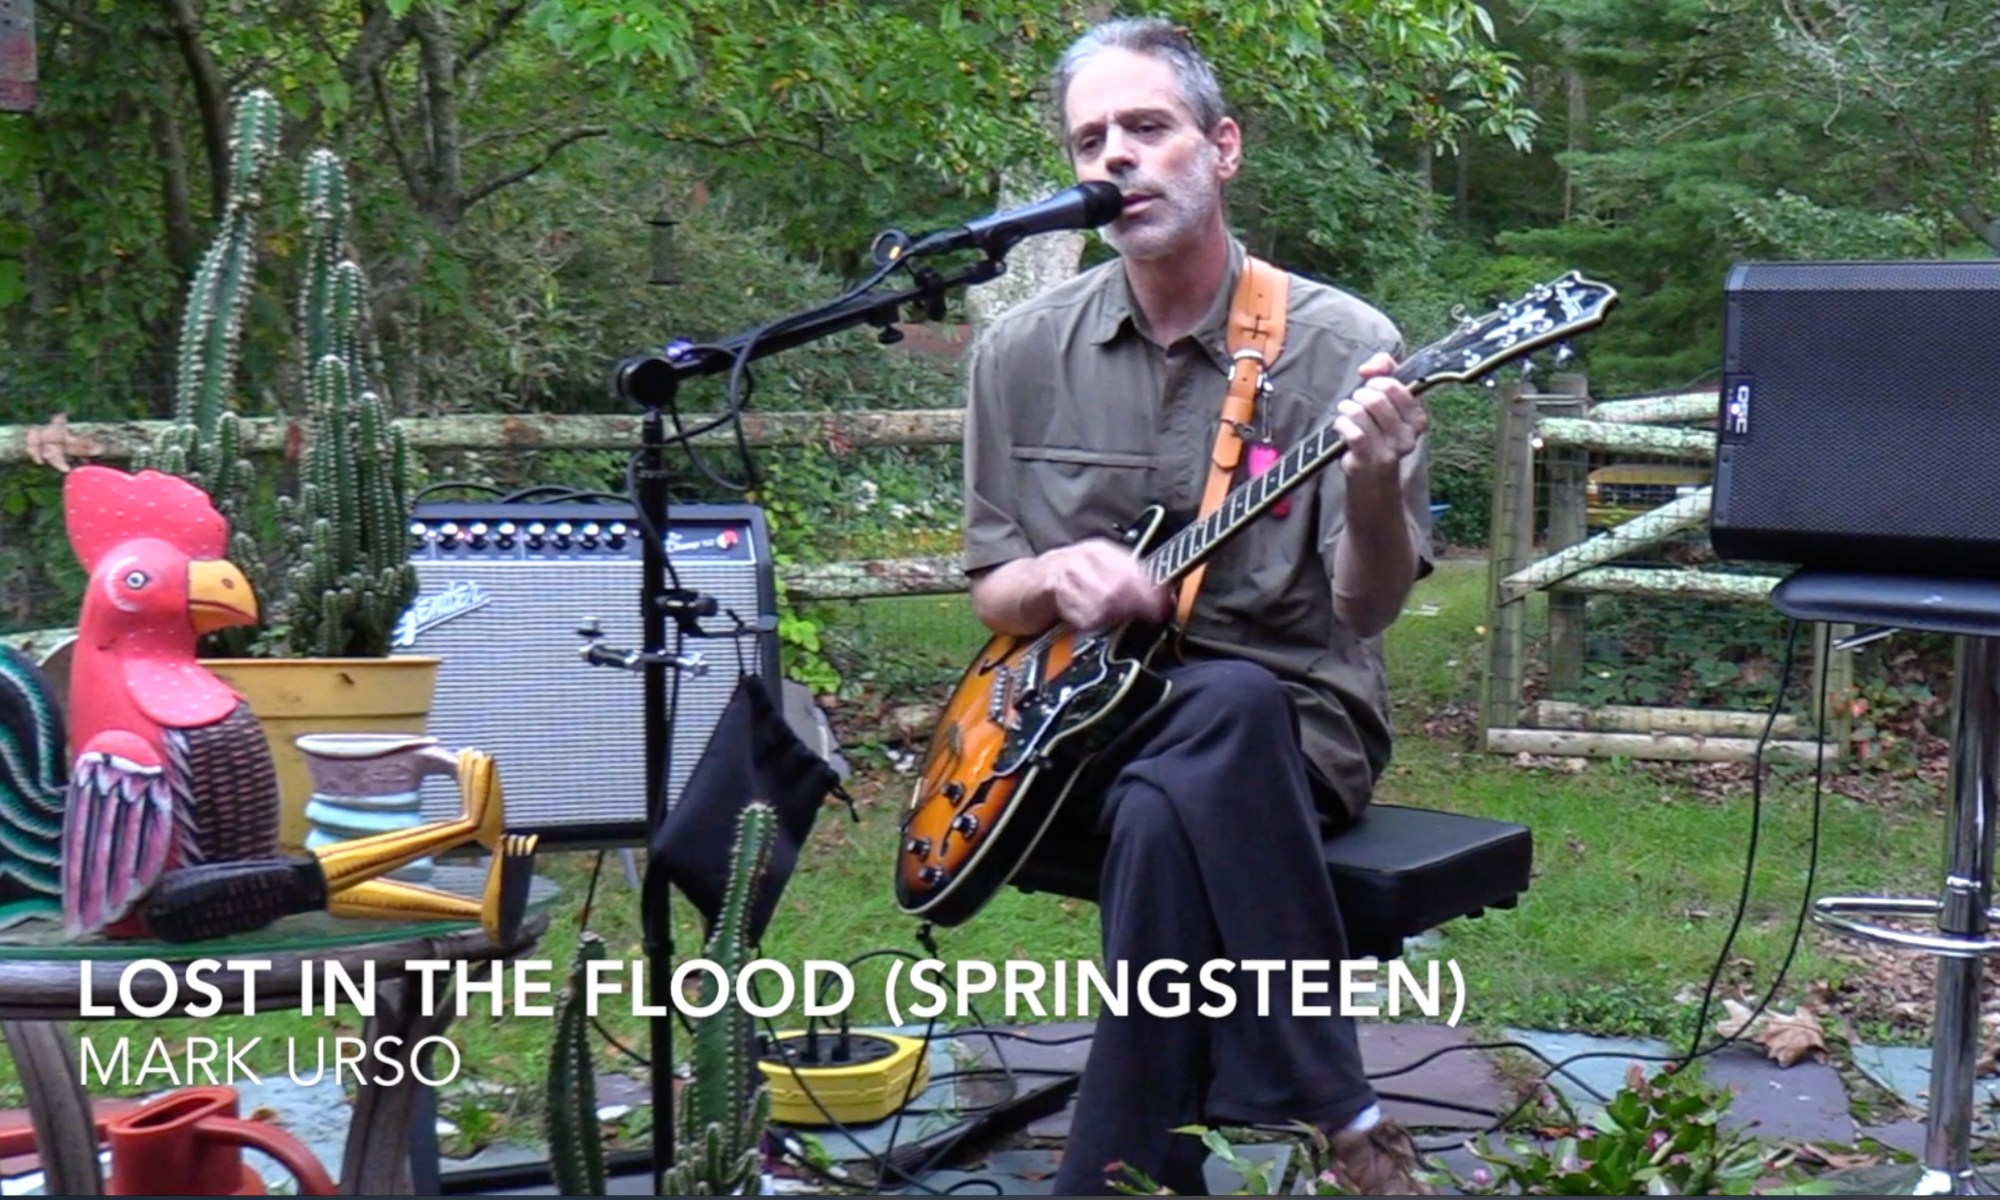 lost in the flood springsteen mark urso